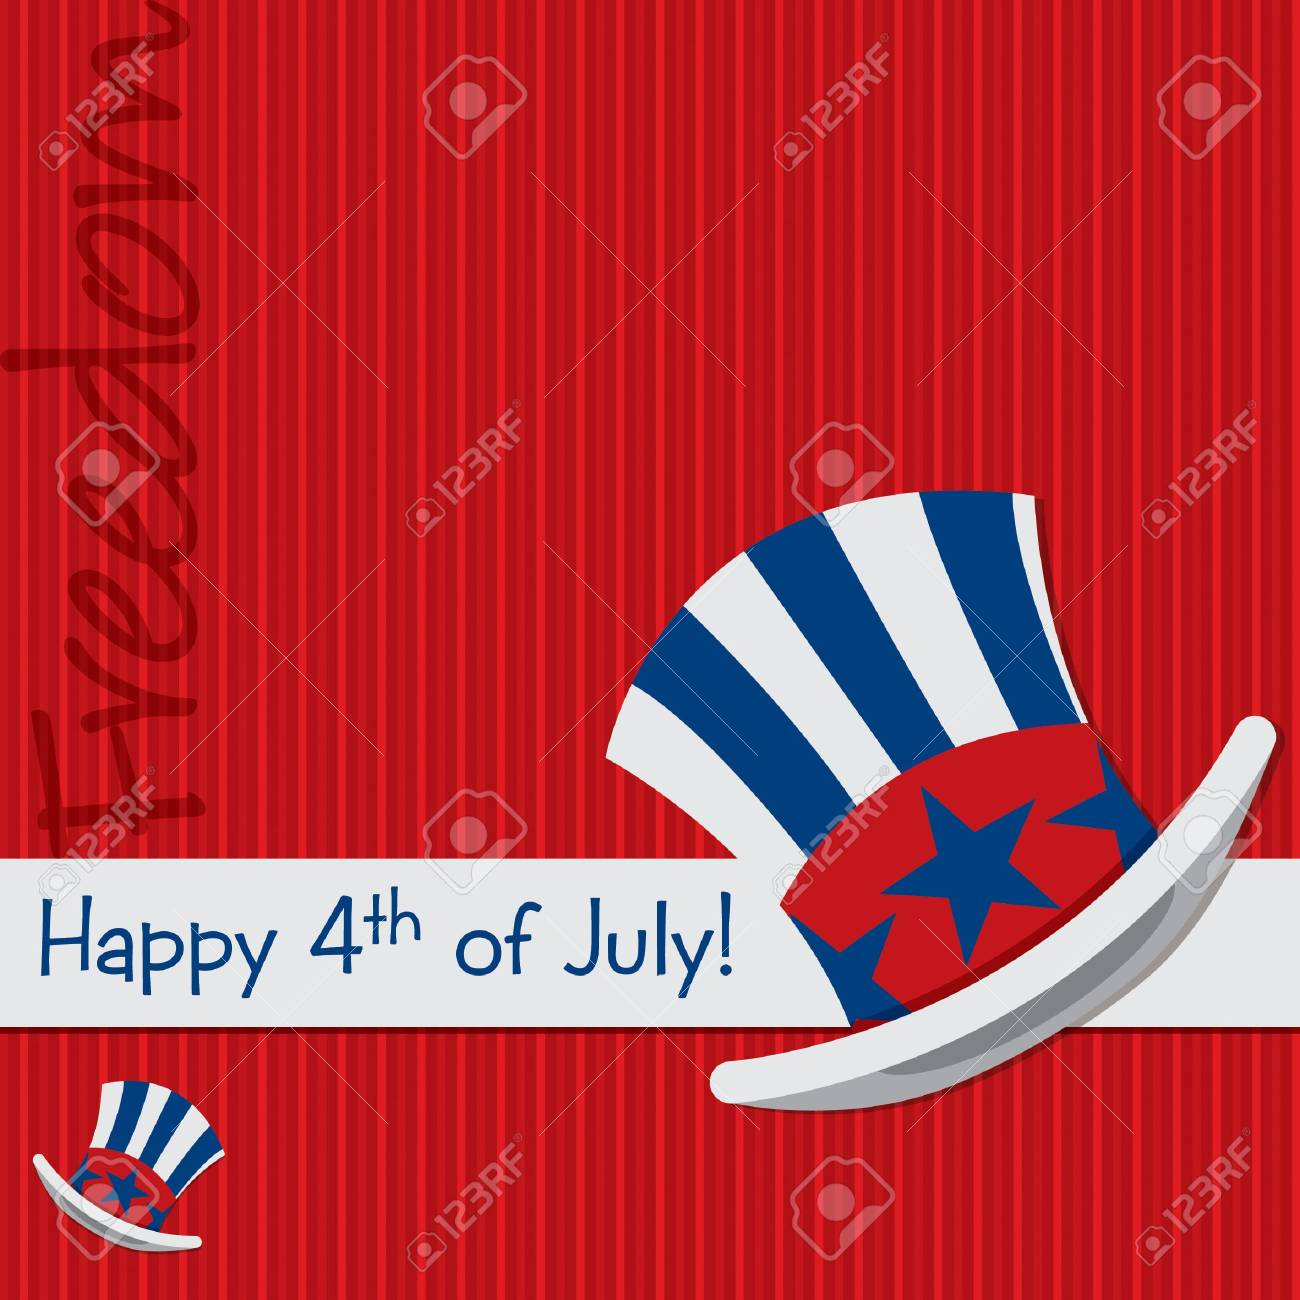 Patriotic Uncle Sam hat 4th of July card in vector format Stock Vector - 19890295